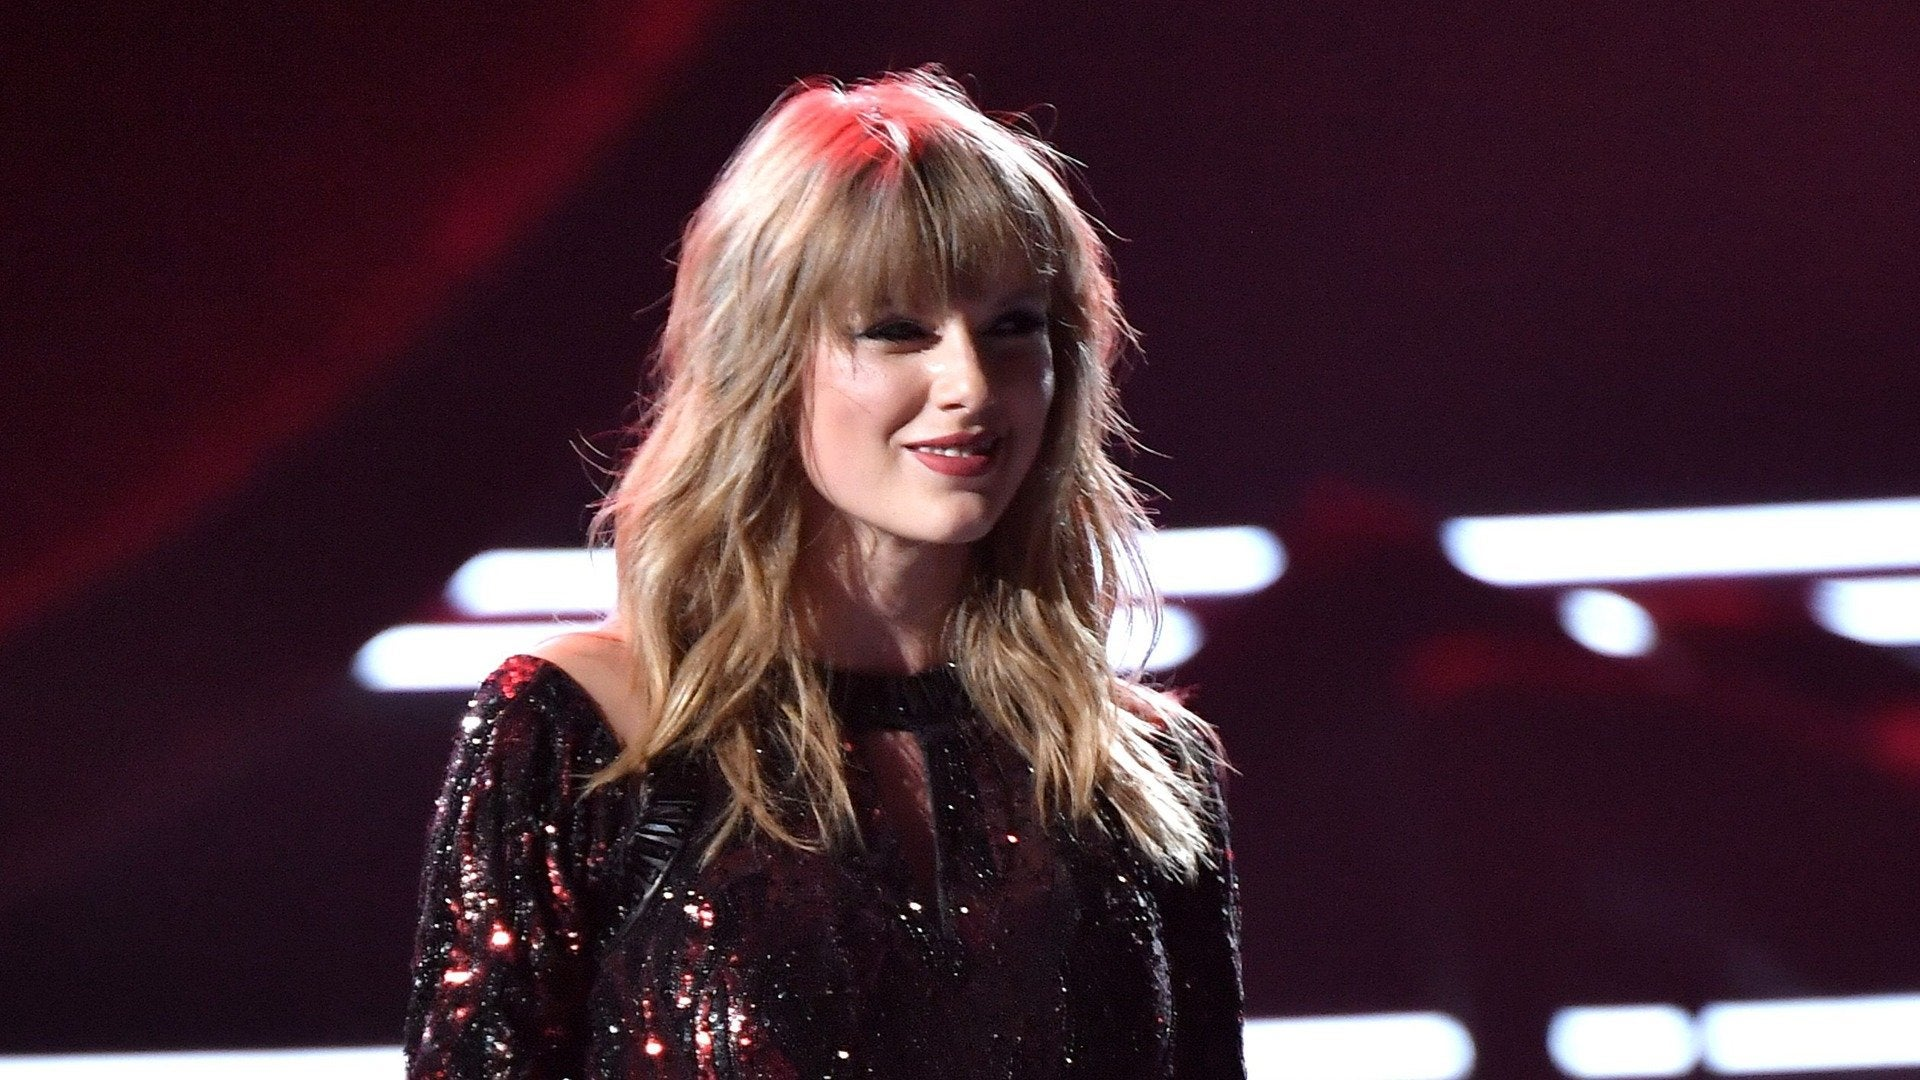 2019 VMA Performer Spotlight: Taylor Swift